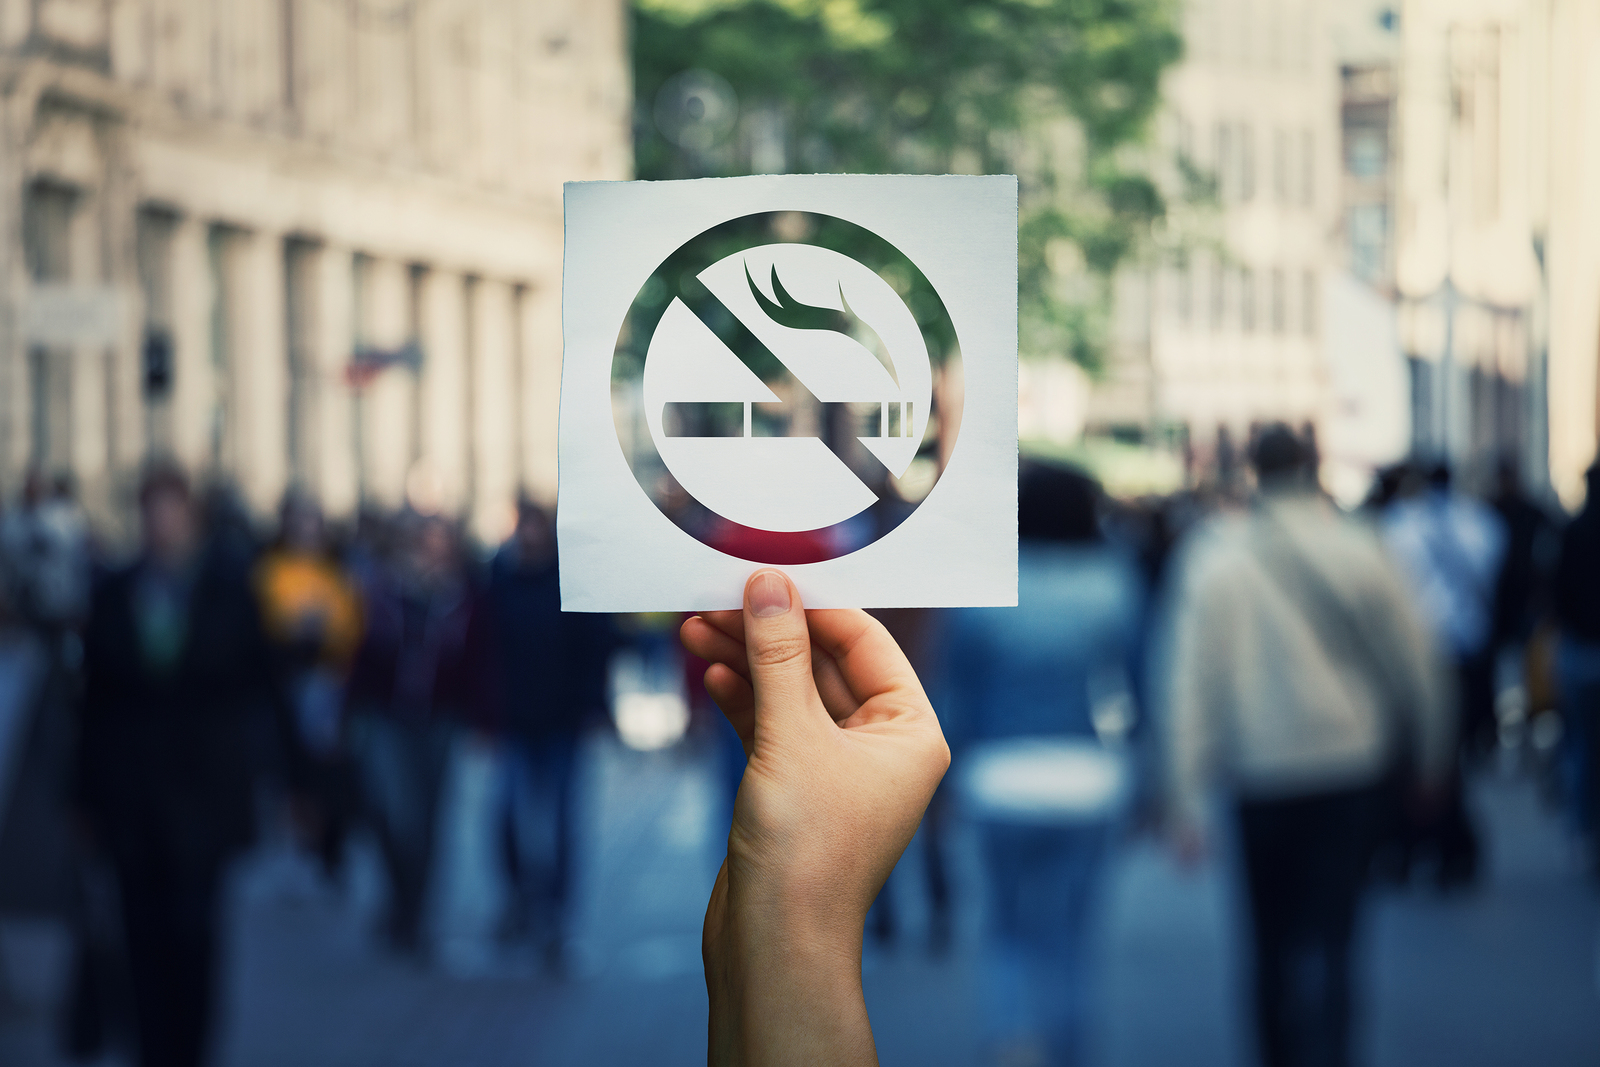 Hand Holding A Paper Sheet With No Smoking Sign Over A Crowded Street